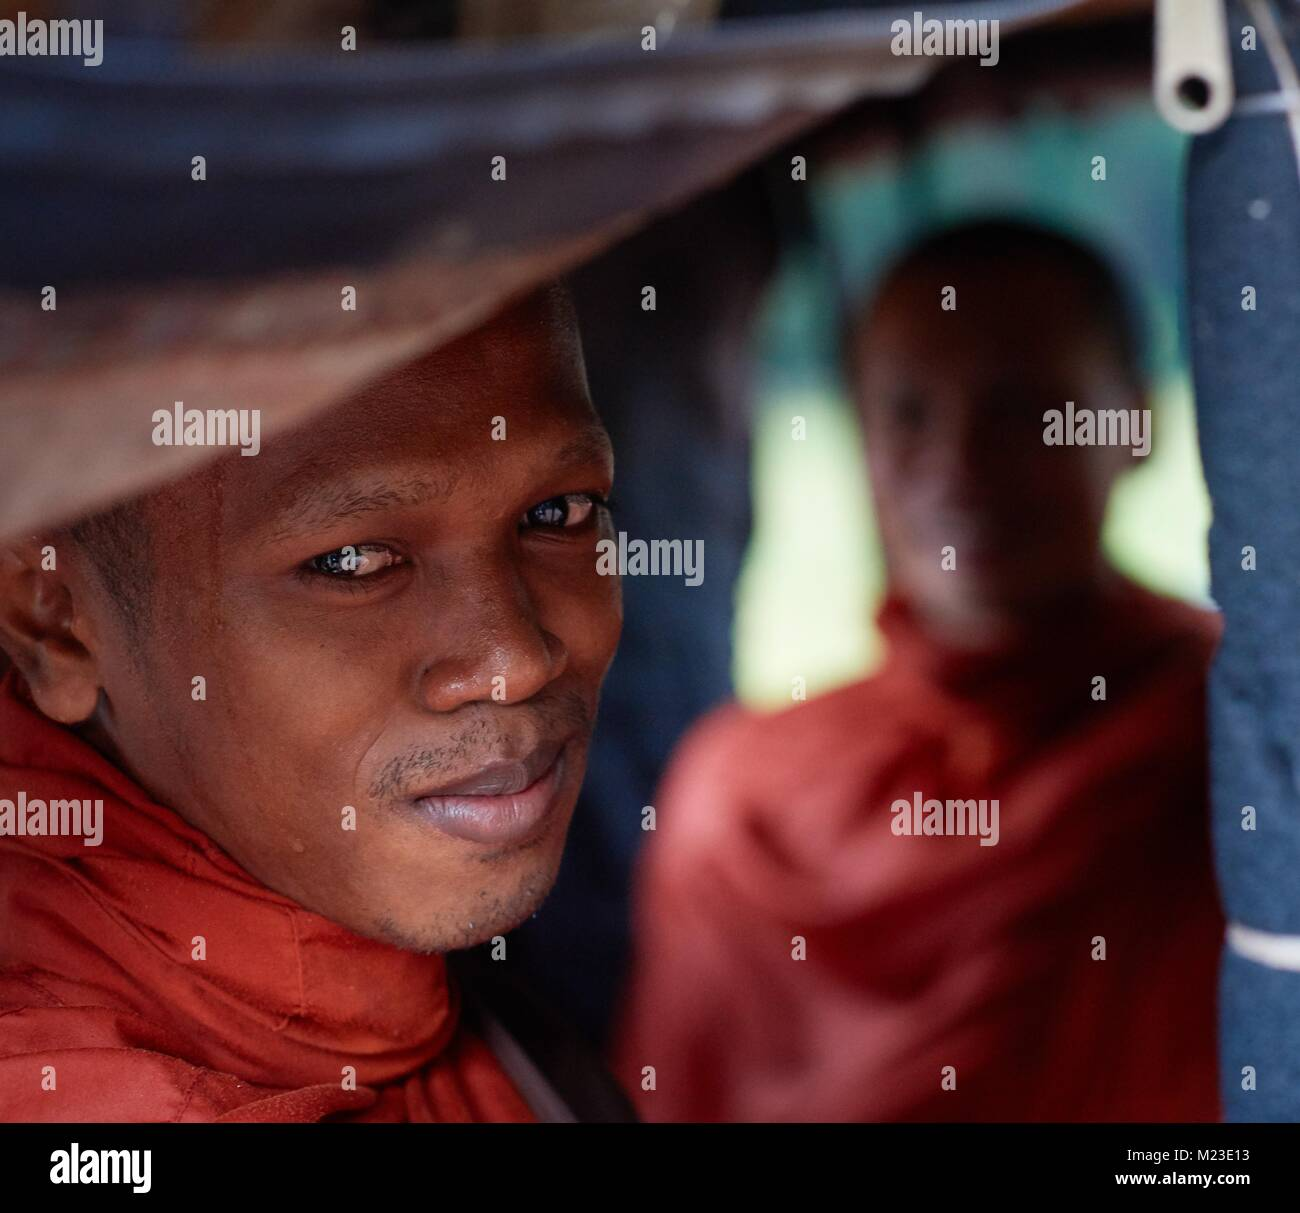 Monk sitting in tuk-tuk, Angkor, Cambodia - Stock Image